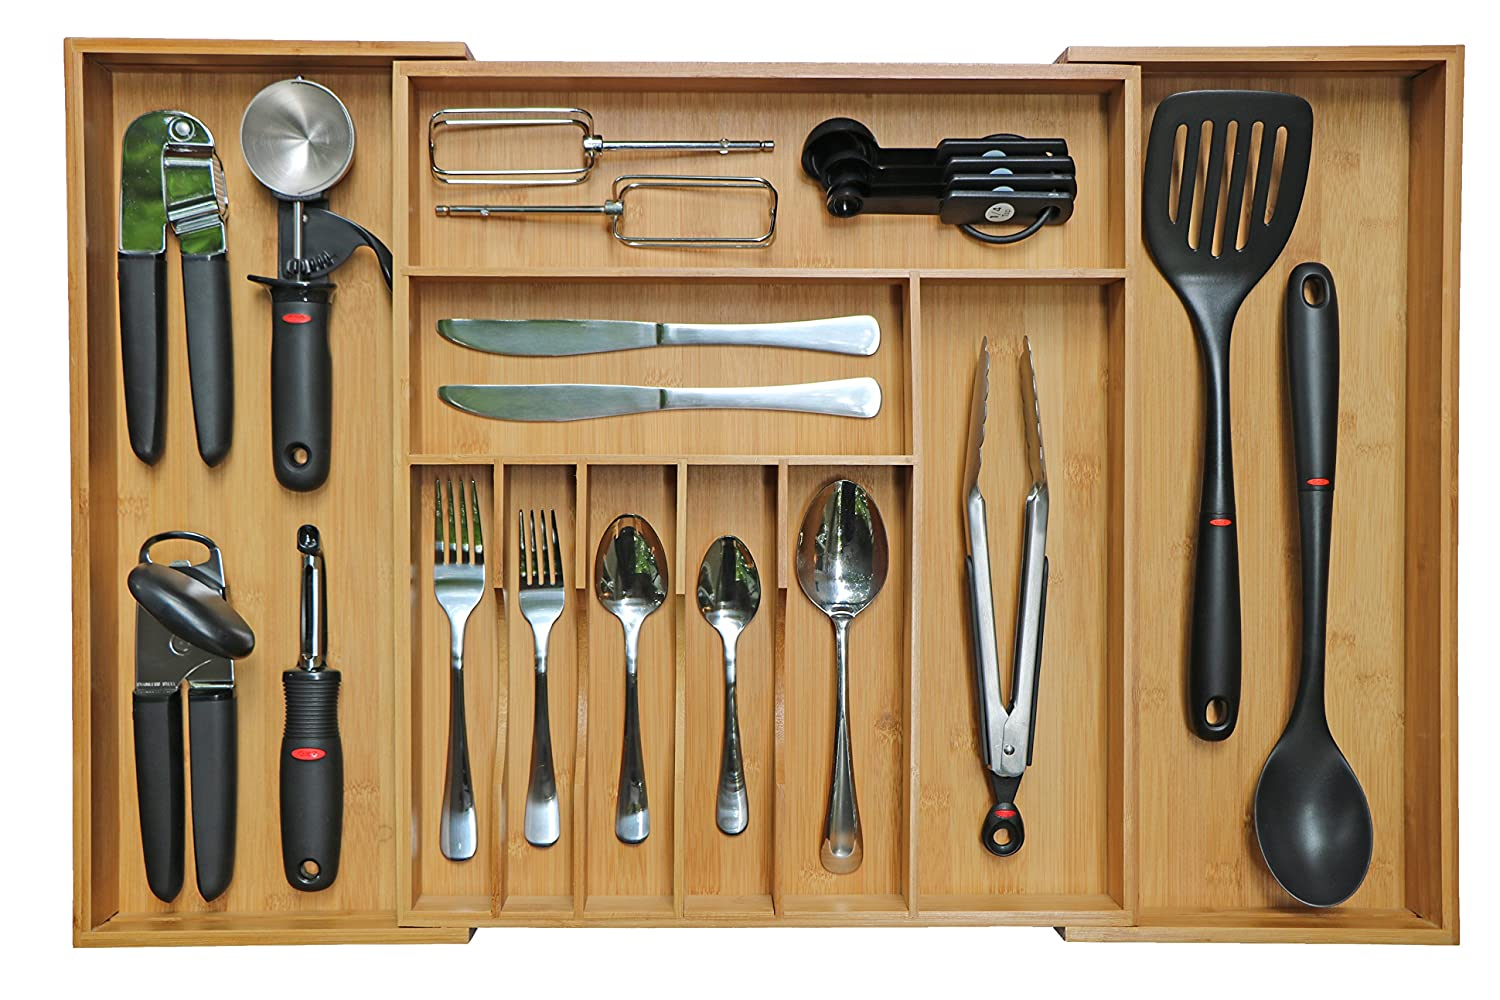 KitchenEdge Bamboo Kitchen Drawer Organizer for Silverware and Utensils, Expandable to 28 Inches Wide, 10 Compartments COMIN18JU068276